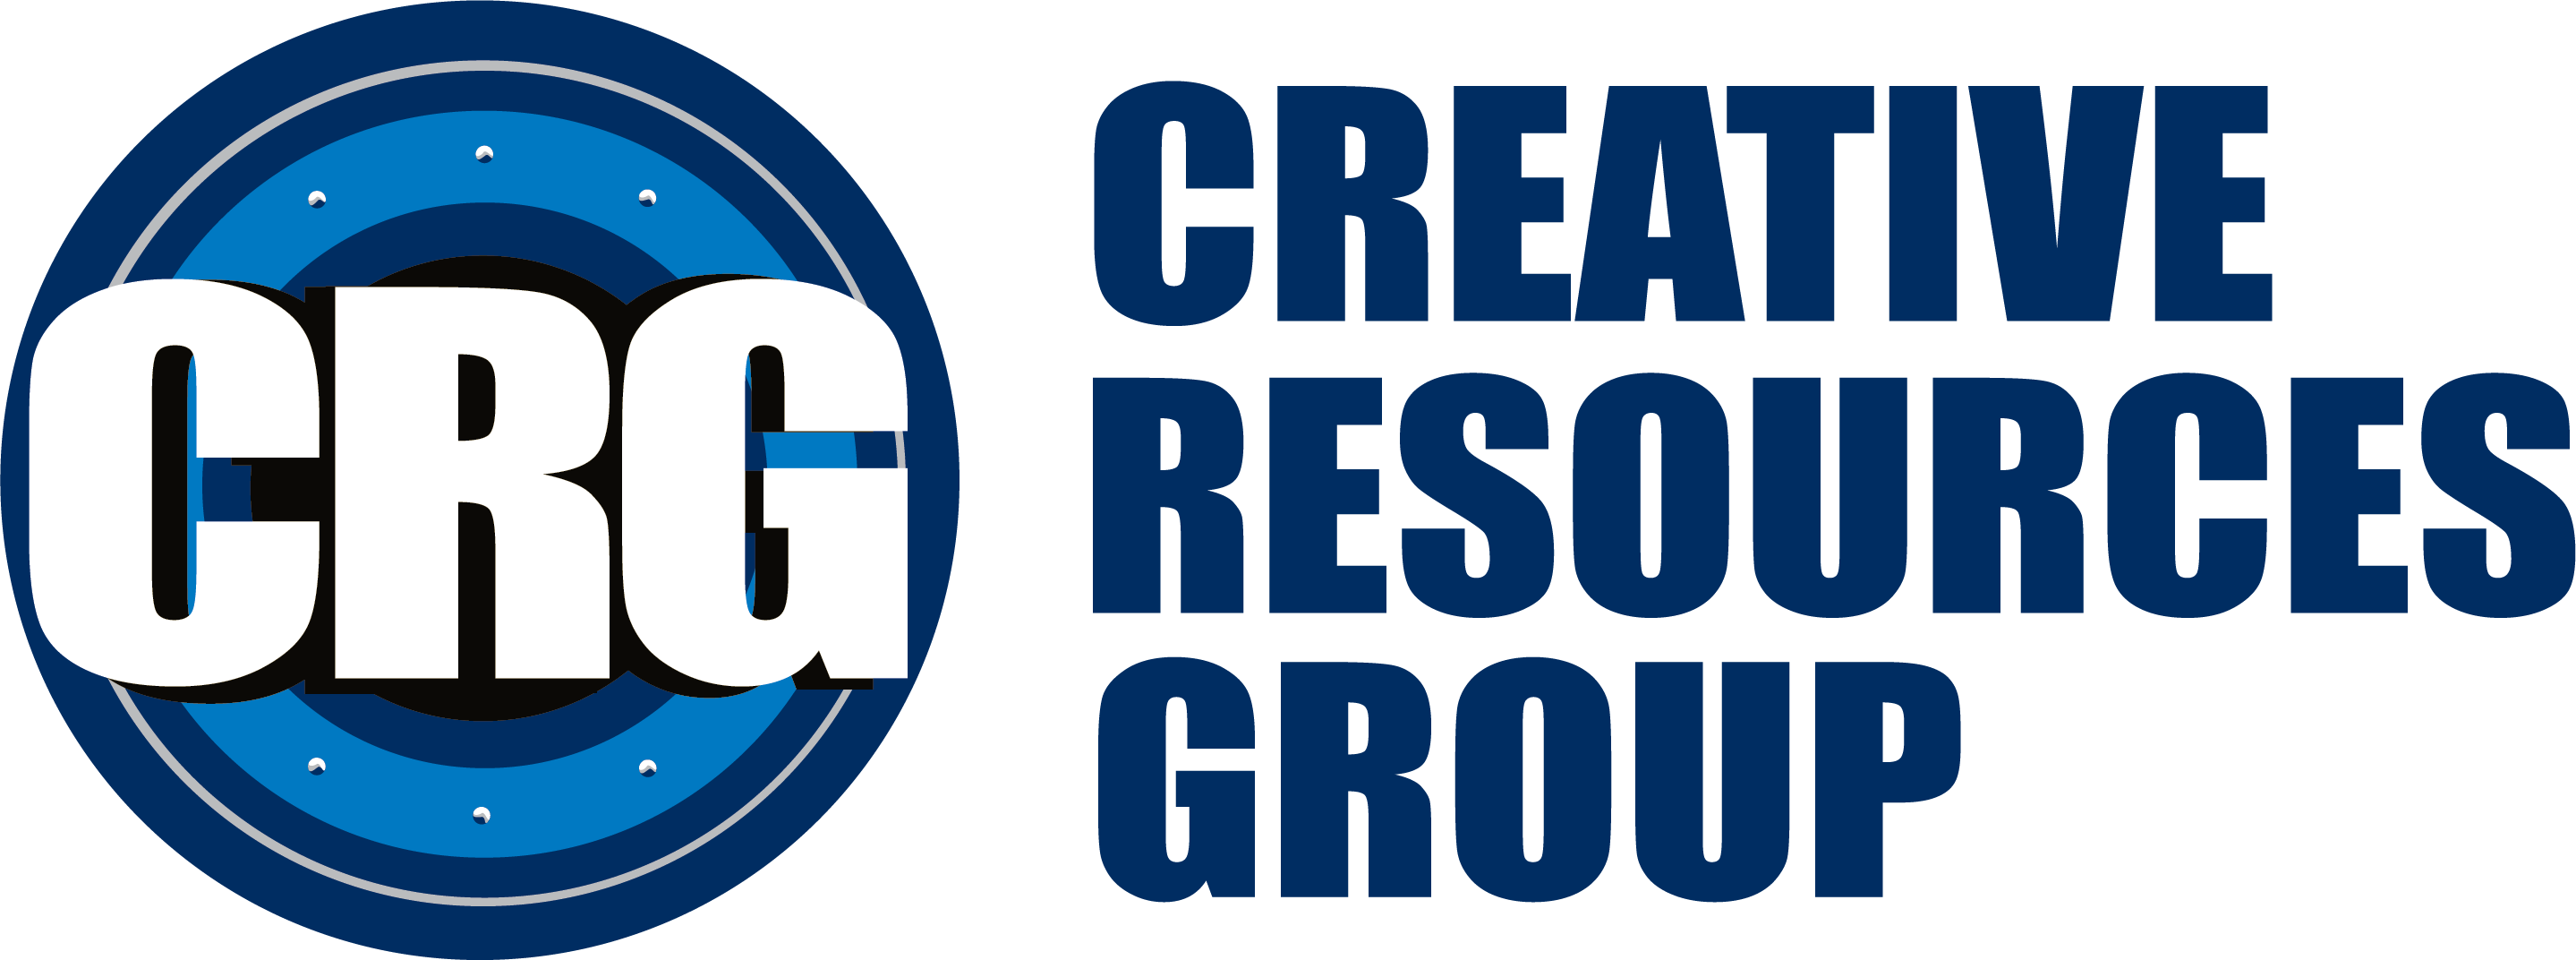 Creative Resources group